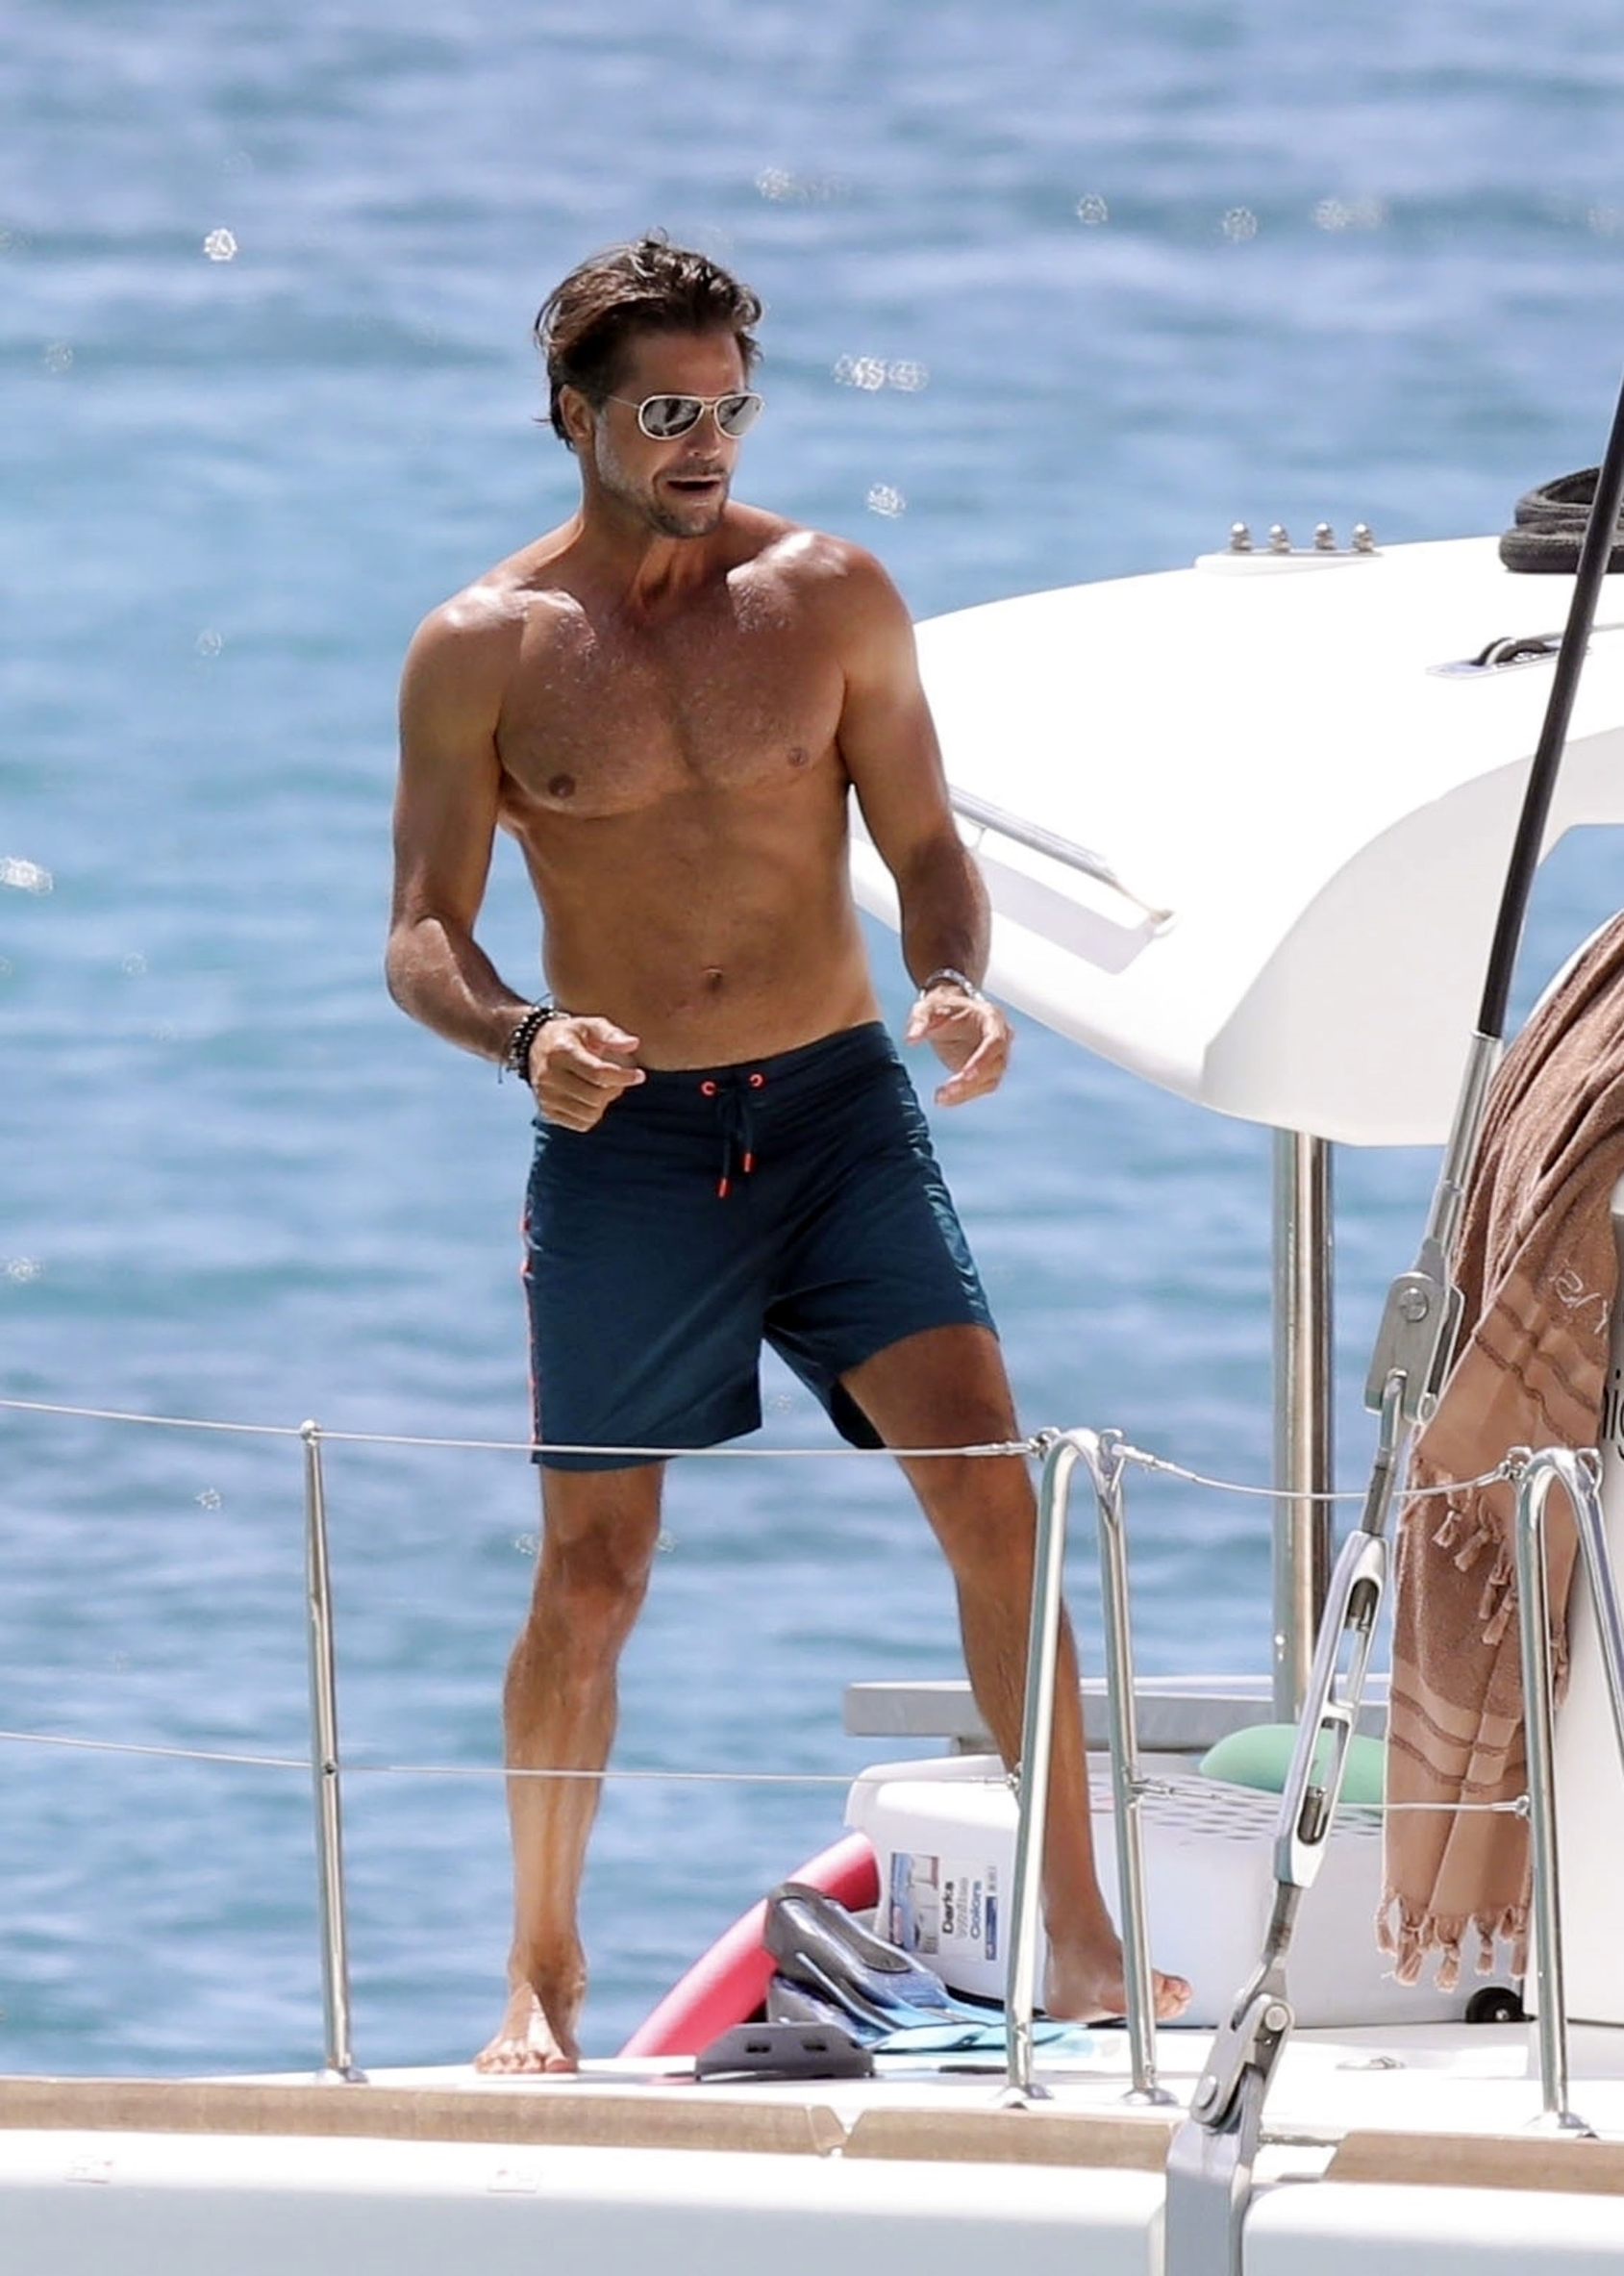 St. Barts, SAINT BARTS  -  *EXCLUSIVE*  - WEB MUST CALL FOR PRICING -  French Actor David Charvet who played Matthew